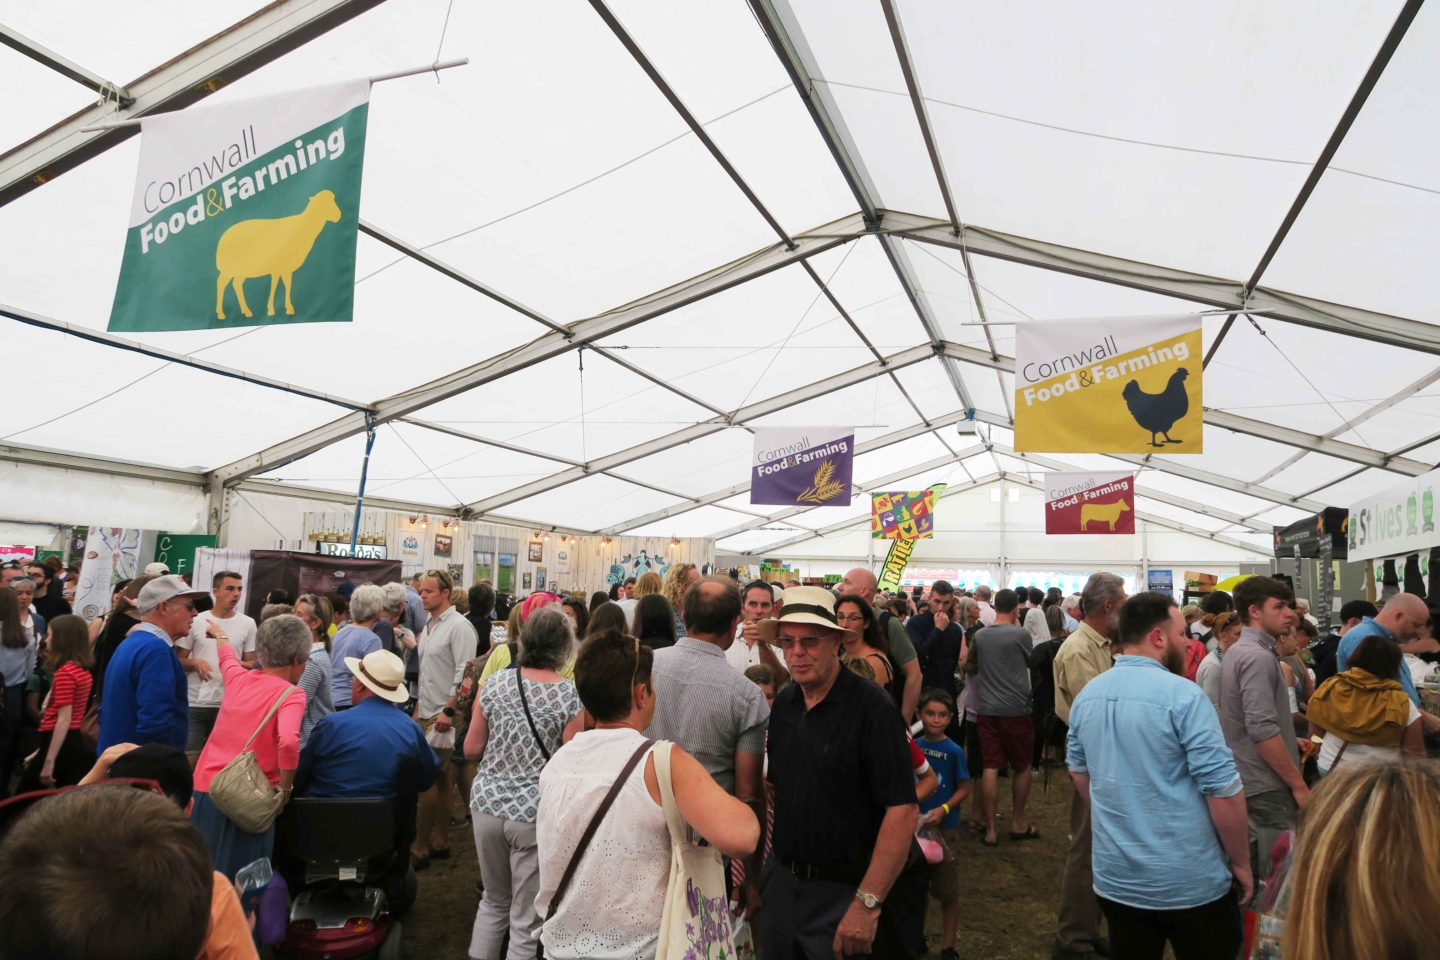 food tent at the royal cornwall show